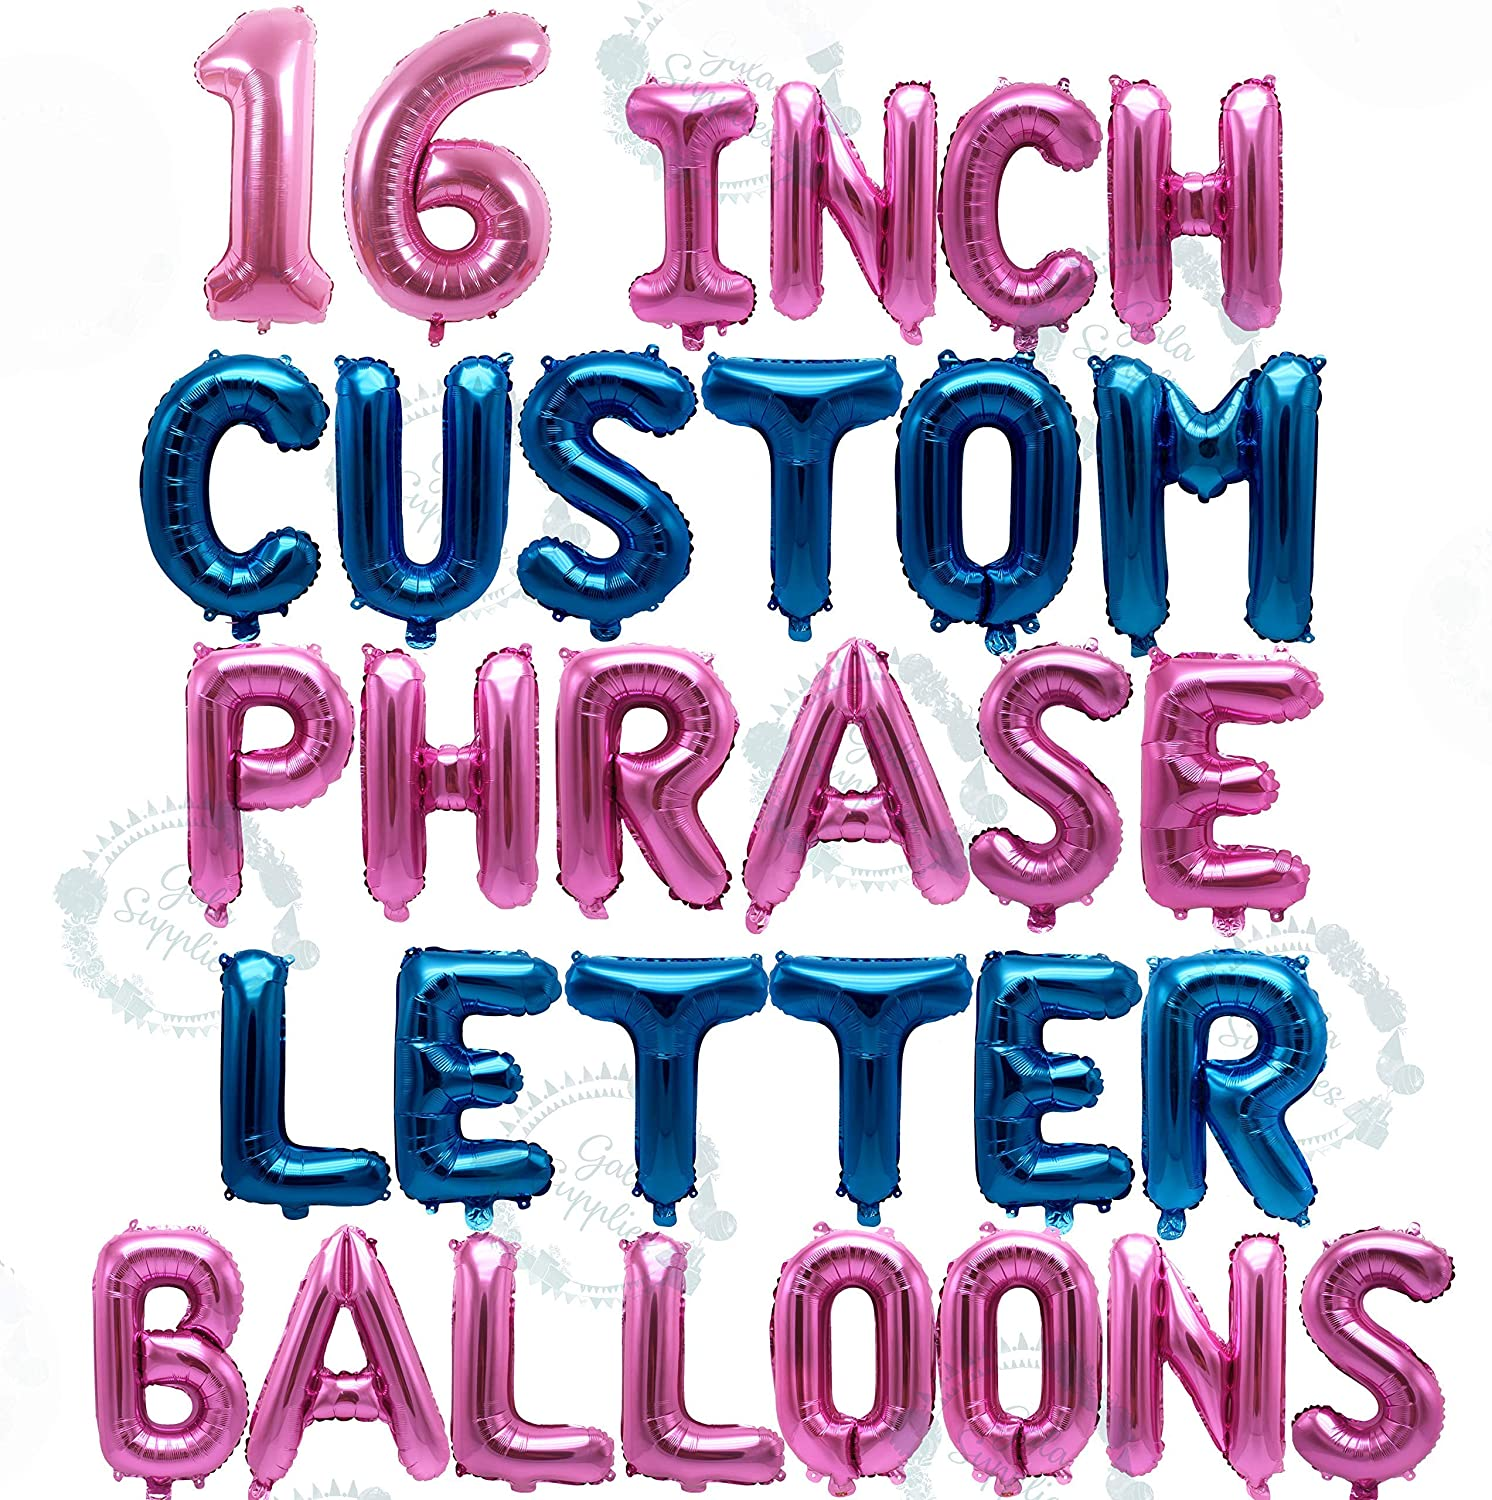 Rose Gold Balloons Gold Silver Letters Party Custom Name Foil Balloons